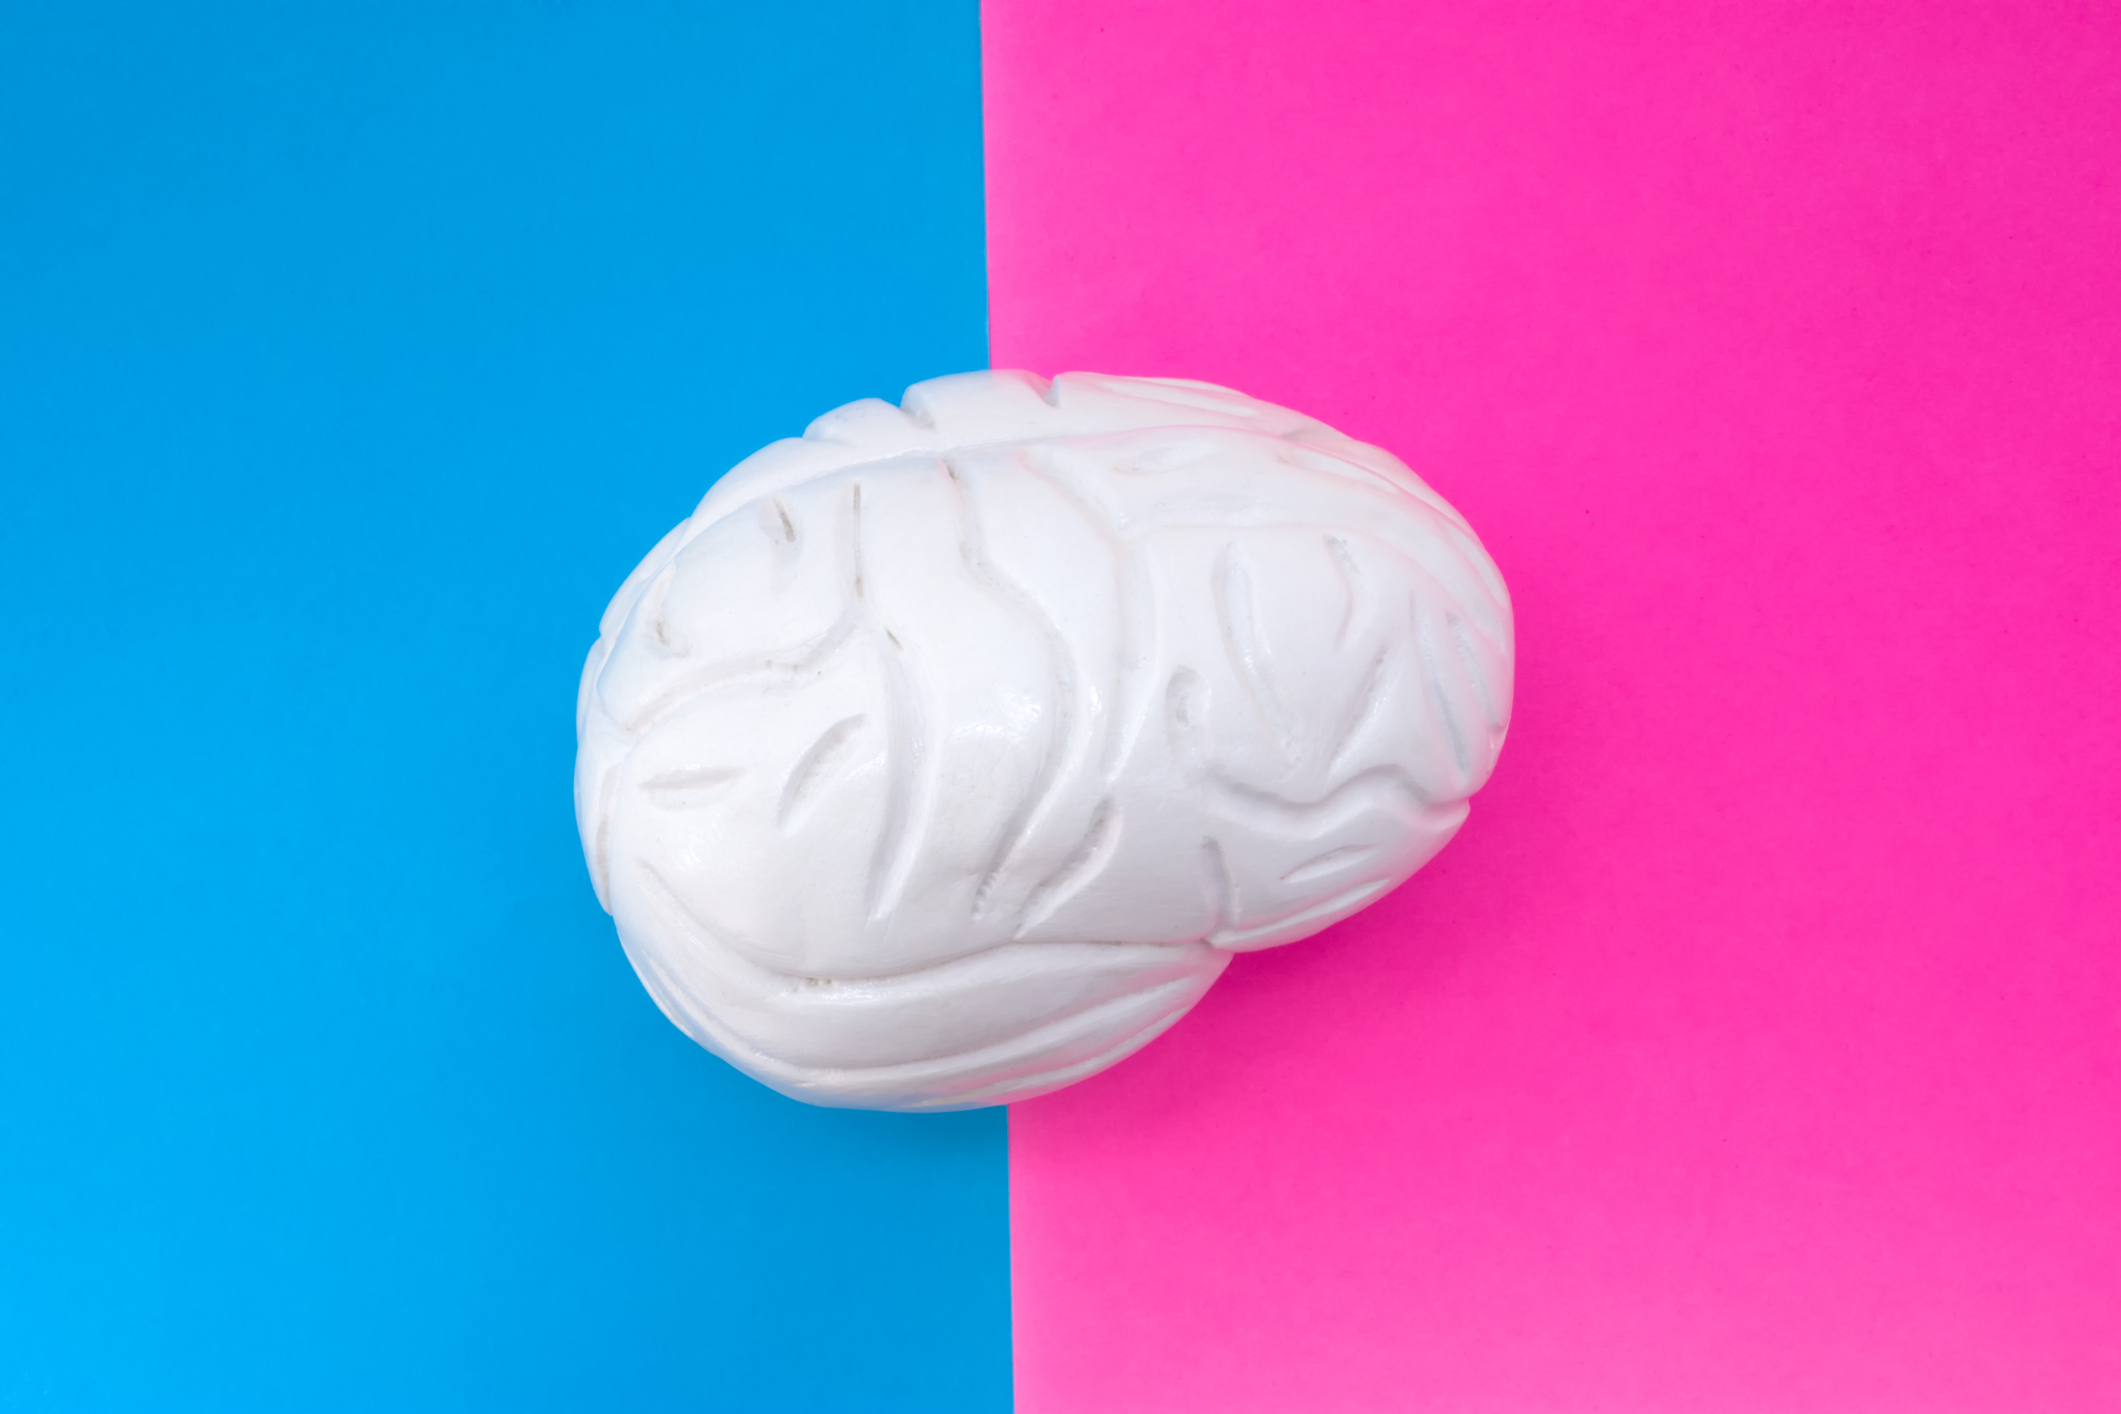 Anatomical shape of brain is located in middle of frame, divided by half by pink and blue background. Concept of gender features of brain or mental health in men and women, functions and structure